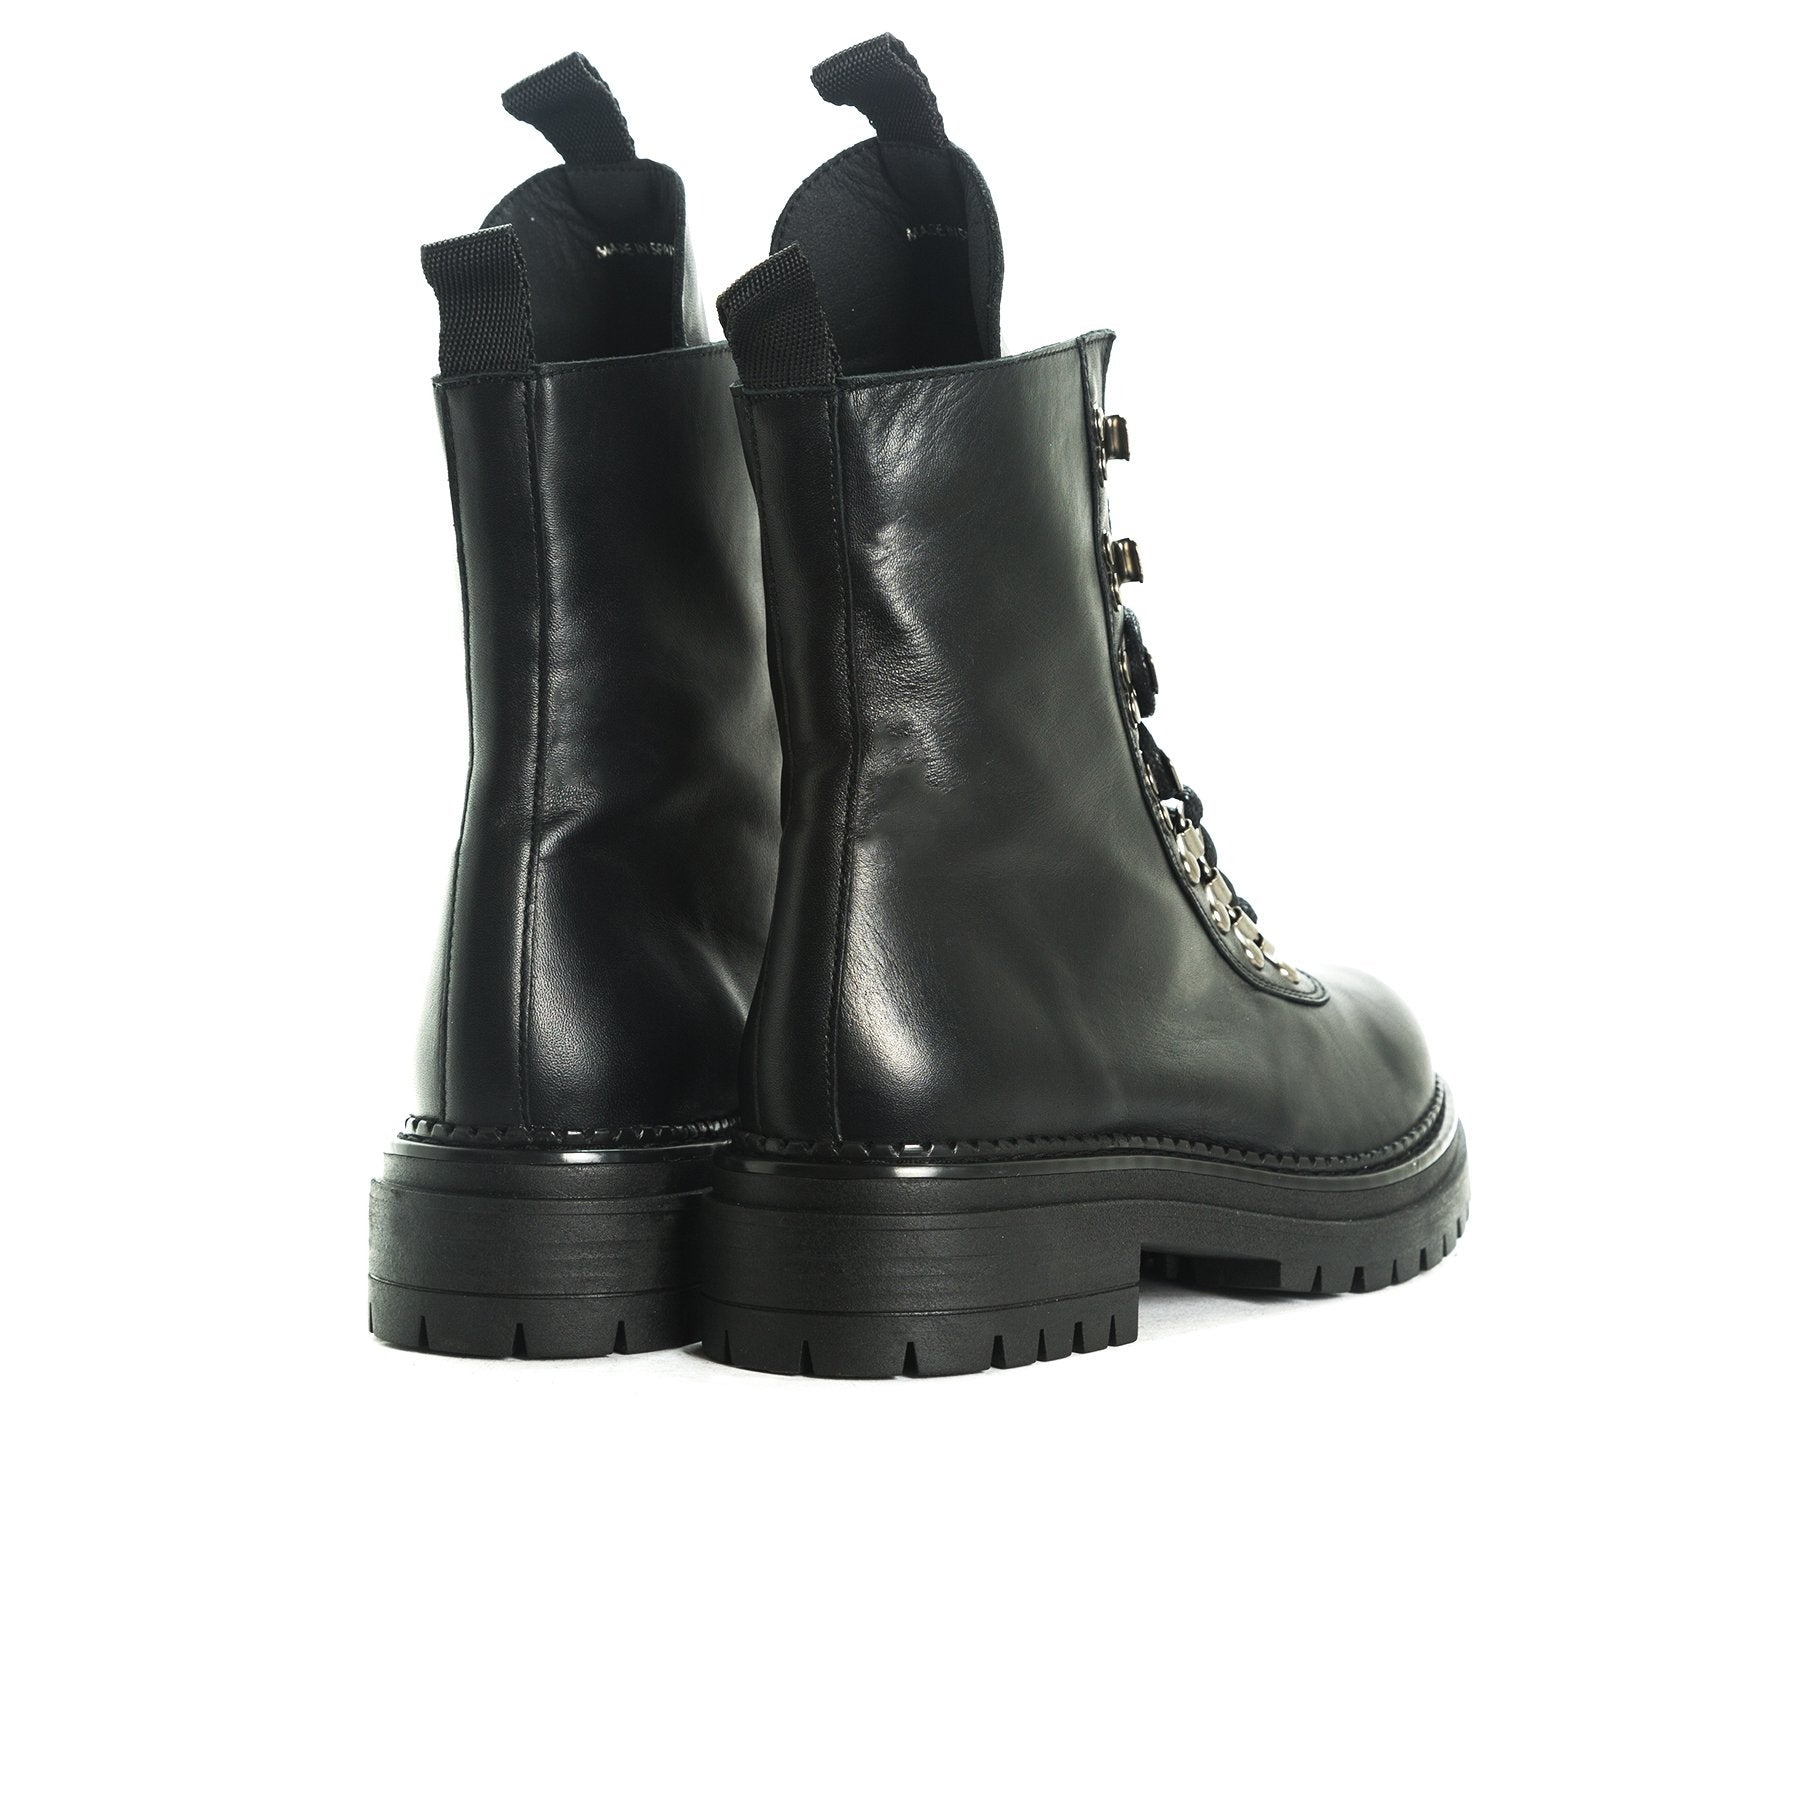 Reina Black Leather Boots